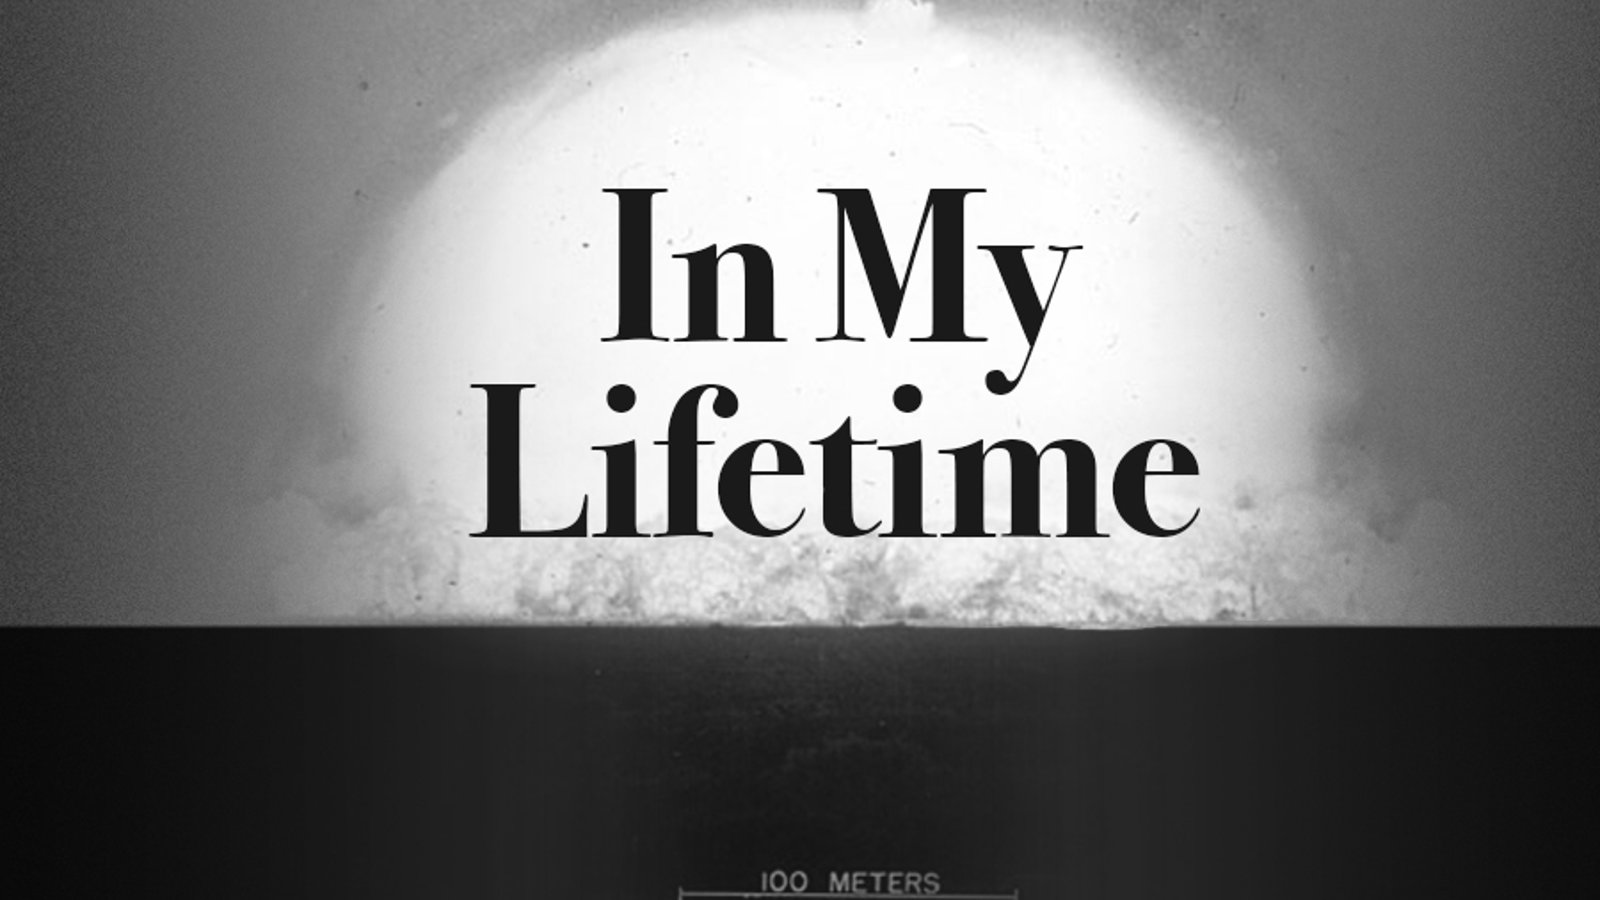 In My lifetime